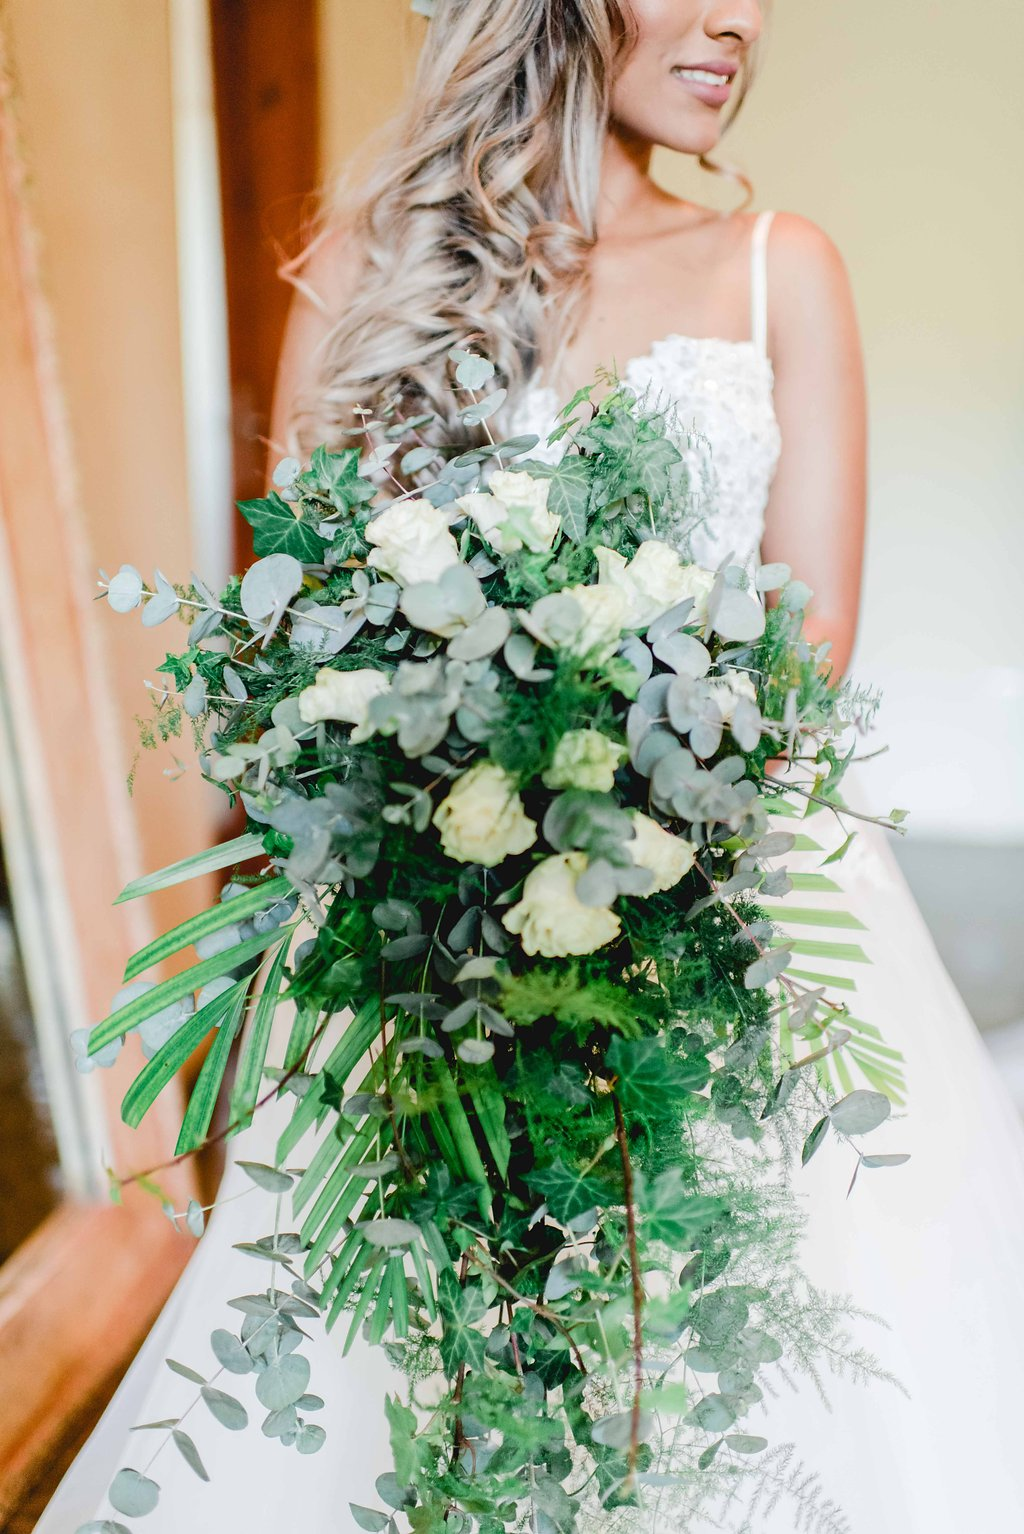 Statement Greenery Bouquet | Image: Carla Adel